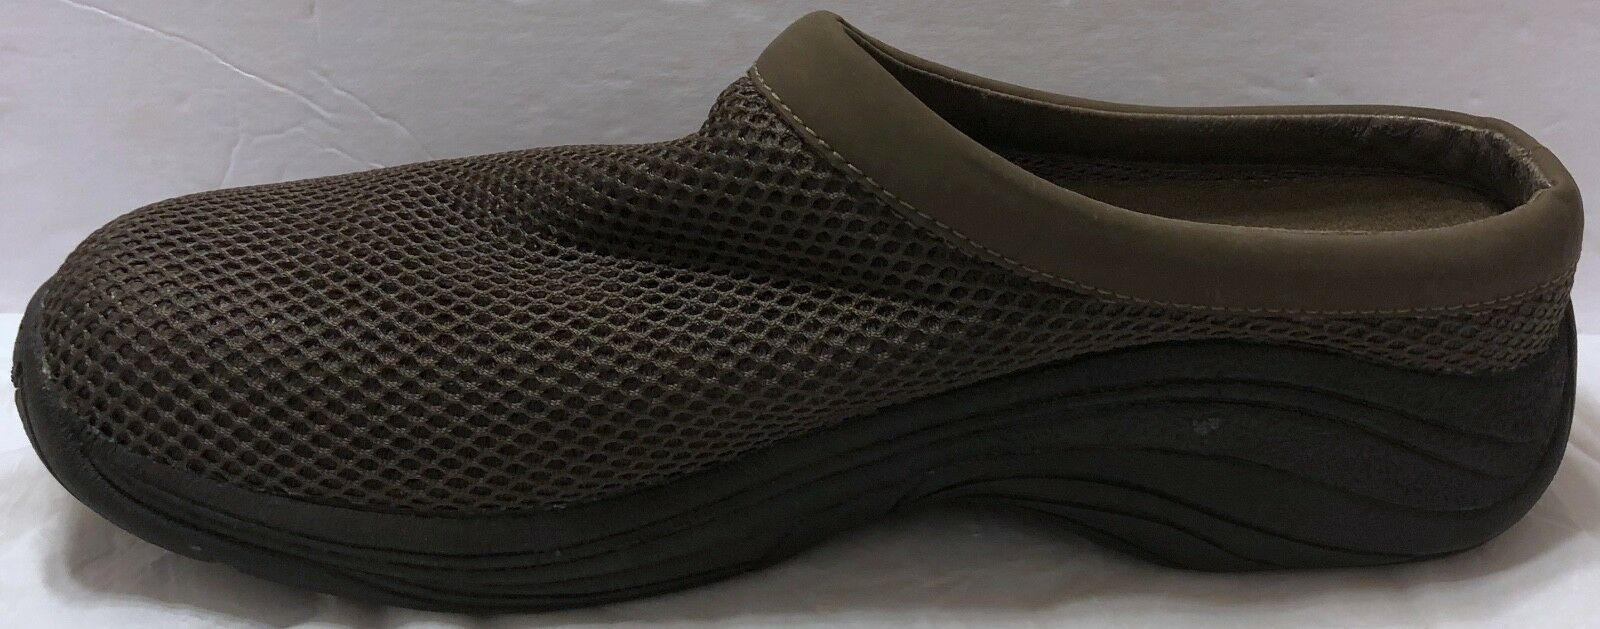 Merrell Dark Green 10 Backless Mesh Clogs Sz 10 Green Slip On Hiking Primal Hike Trail 182dc1